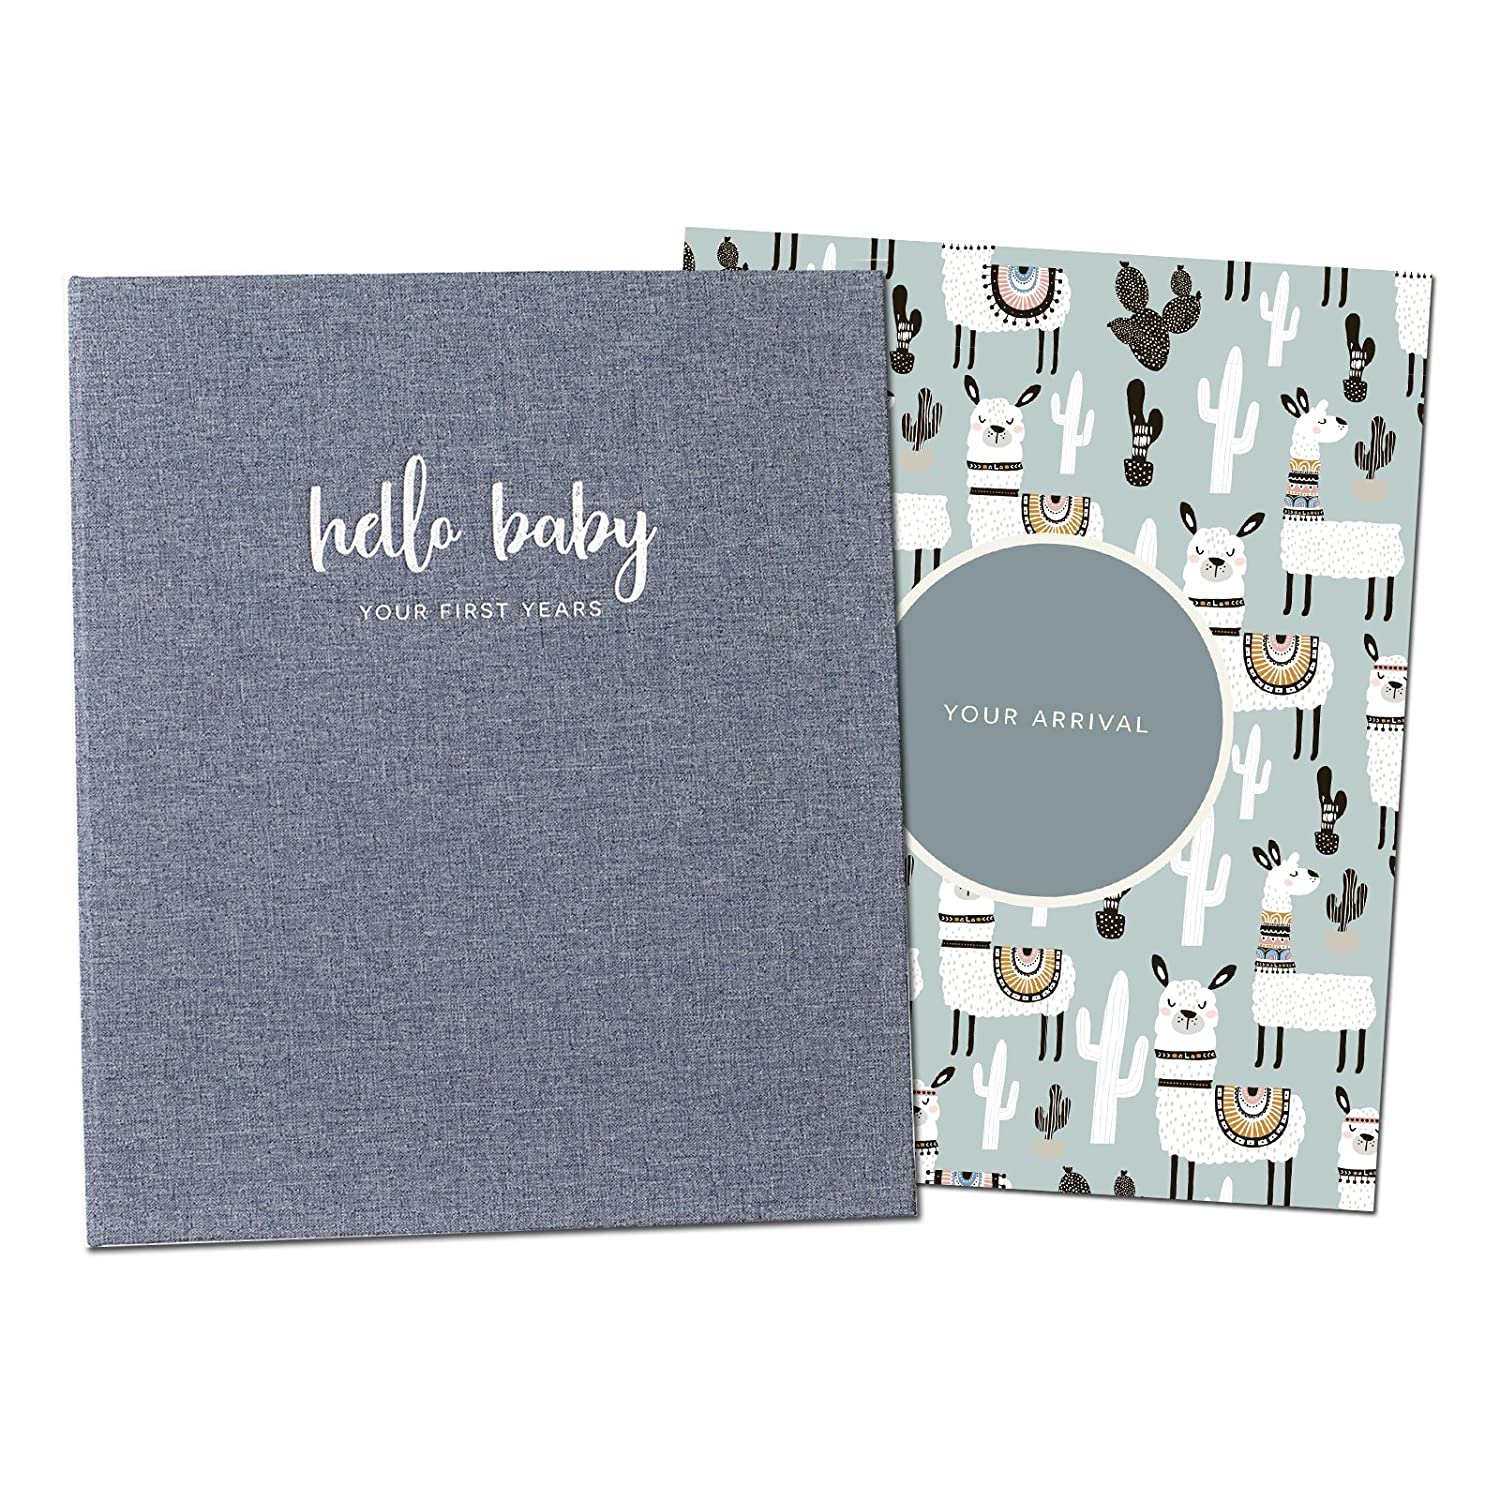 Minimalist Baby Memory Book | Keepsake Milestone Journal | LGBTQ Friendly | 9.75 x 11.25 In. 60 pages | Perfect Baby Shower Gift Peachly